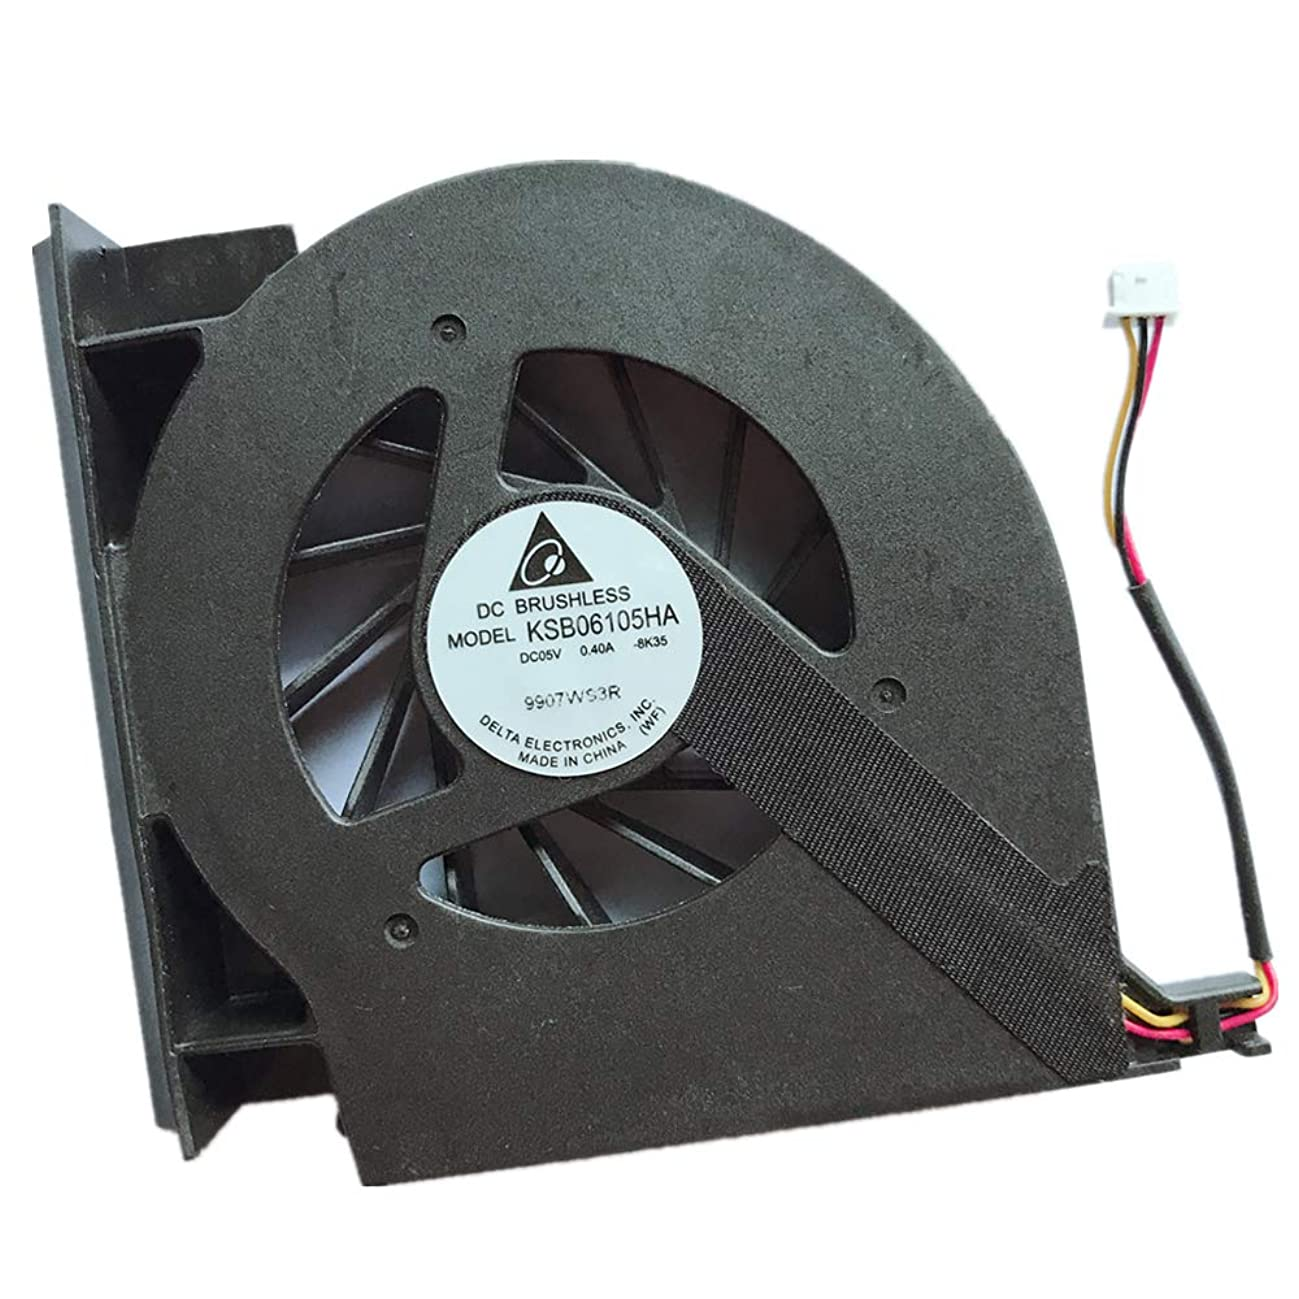 Replacement Compatible Laptop CPU Cooling Fan Cooler for HP Compaq Presario Pavilion by CQ61 G61 CQ71 G71 CQ70 532605-001 CQ61-420ER CQ61-404AU CQ61-306TX CQ61-327TX CQ61-328TX CQ61-223TX CQ61-110TU